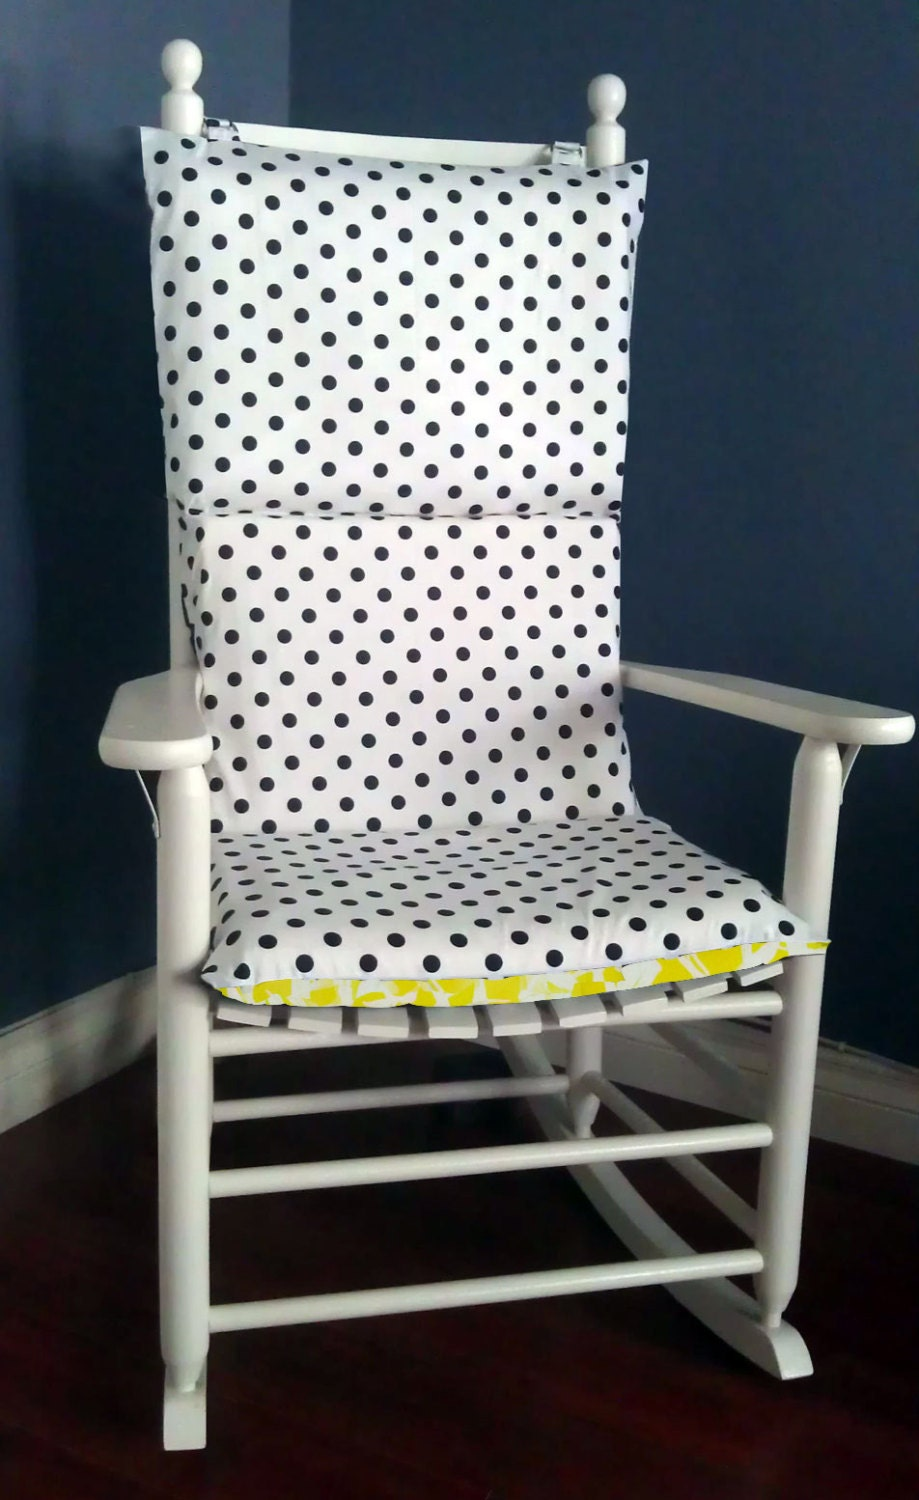 on sale rocking chair cushion navy polka dot yellow bamboo. Black Bedroom Furniture Sets. Home Design Ideas